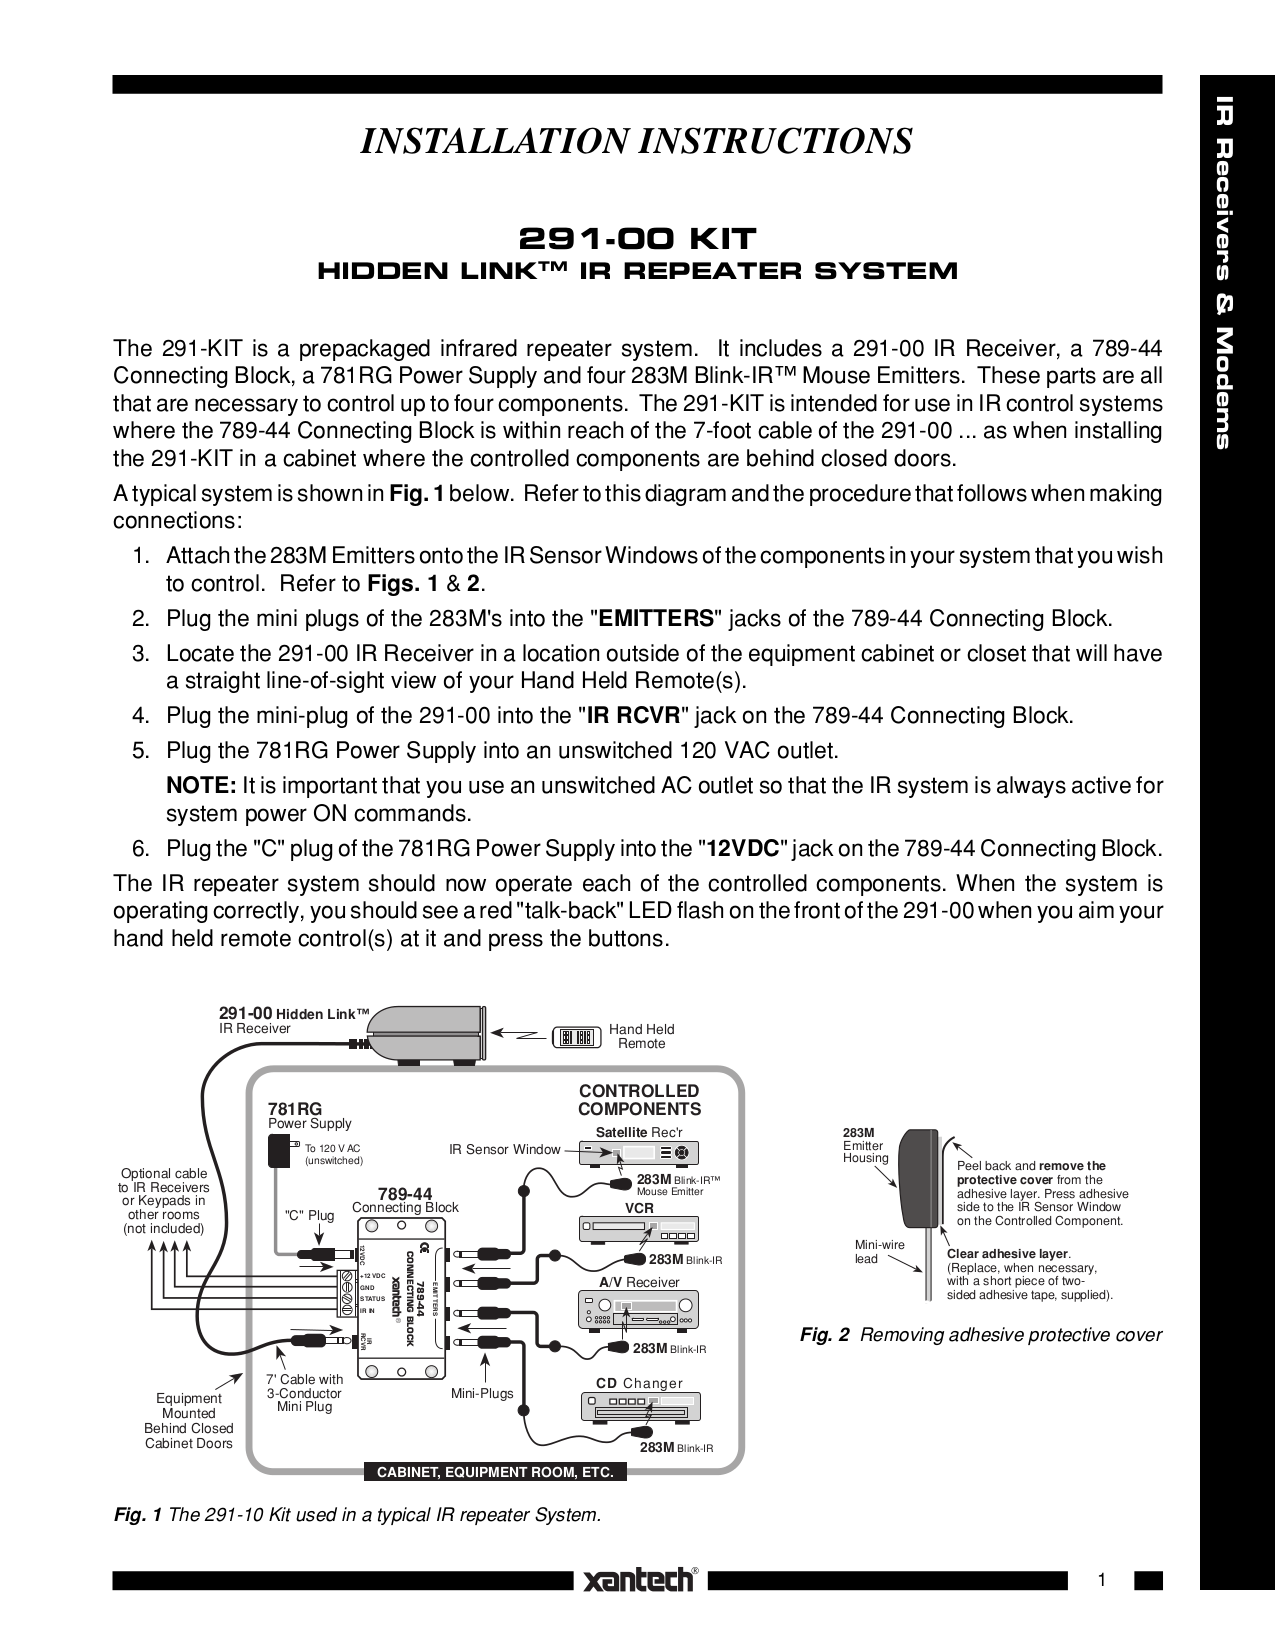 Xantech Ir Receiver Wiring Diagram 34 Images Mouse Plug 63 291kitpdf 0 Download Free Pdf For 291 00 Kit Repeater System Other